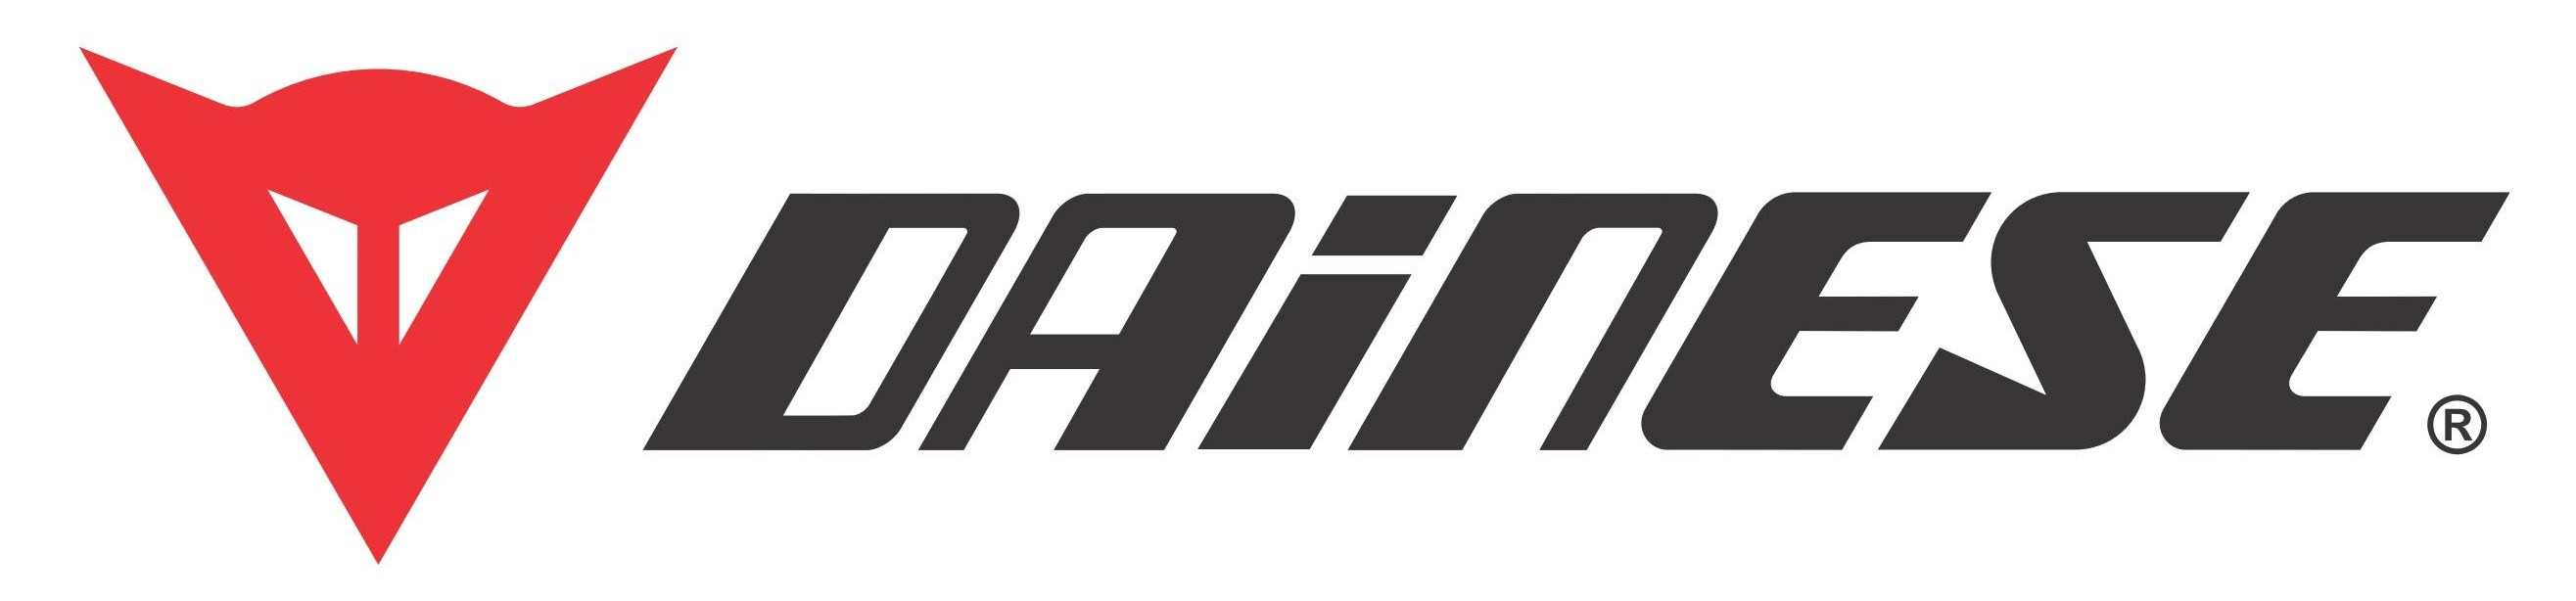 Dainese Logo [EPS File] Vector EPS Free Download, Logo, Icons, Brand Emblems